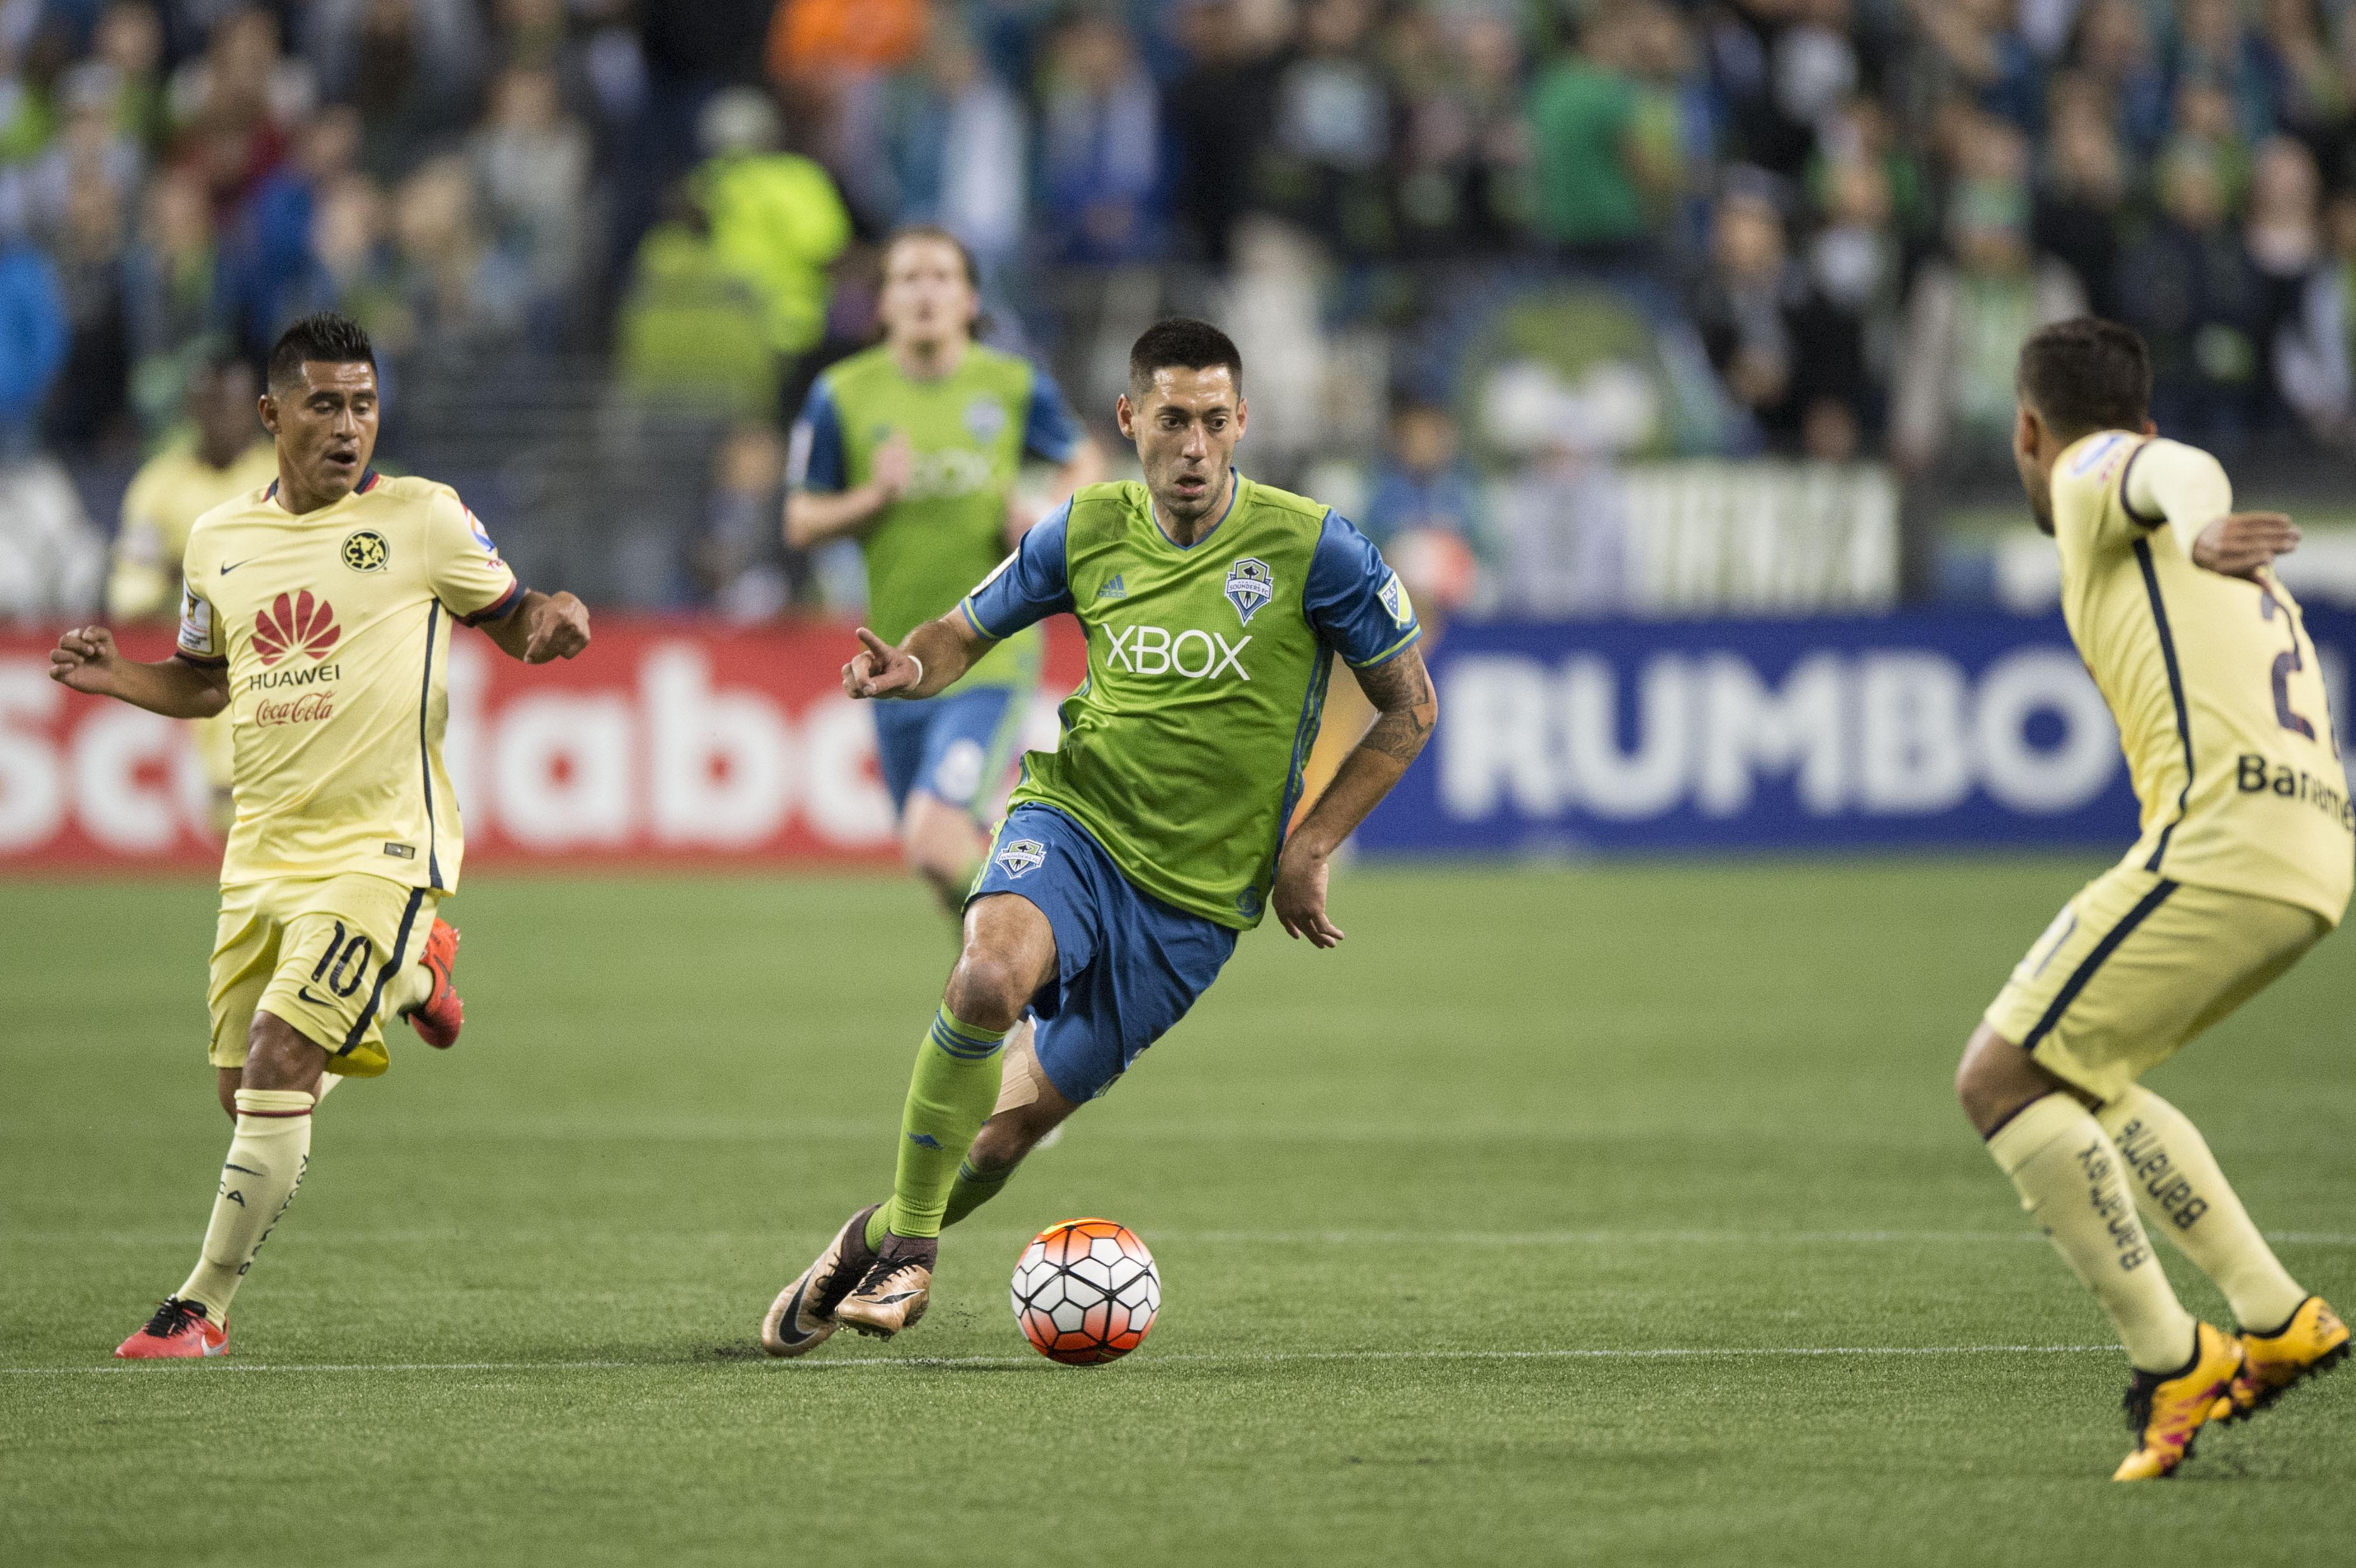 9133616-mls-concacaf-champions-league-club-america-at-seattle-sounders